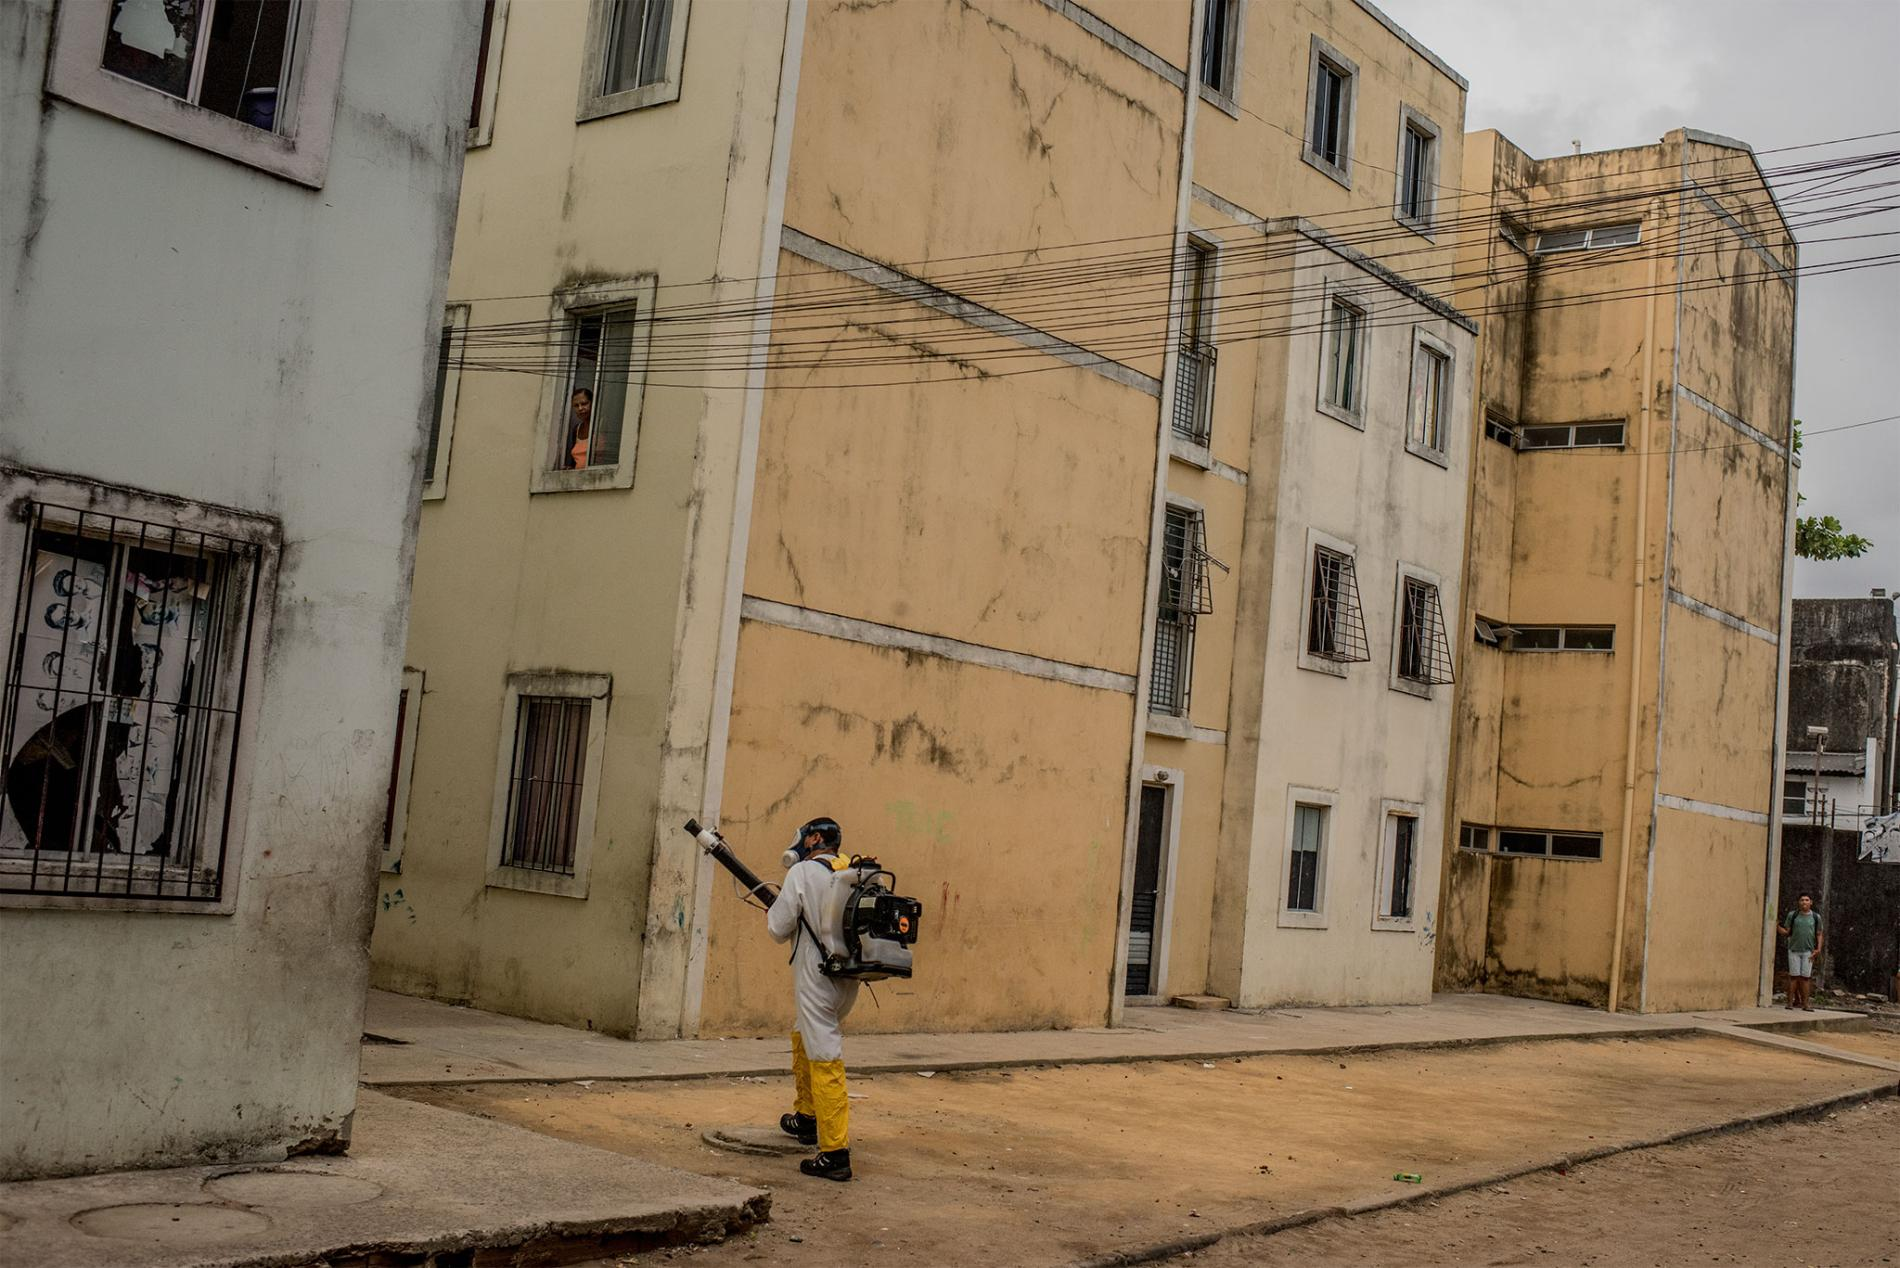 A health worker fumigates a neighborhood in Recife. Munita says that people are often surprised to see fumigators on their streets. Some close their doors against the spray, while some open them to help kill mosquitoes in their houses.